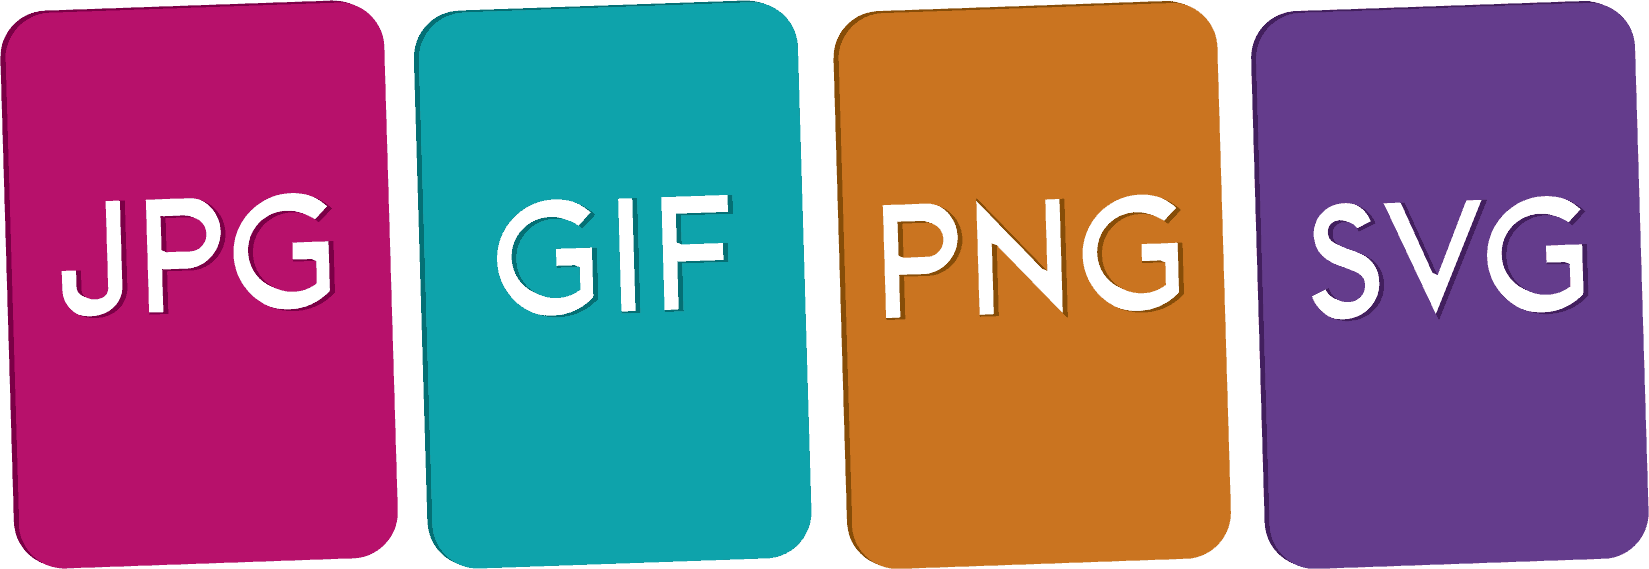 What the difference between a jpg, gif, png and svg?.